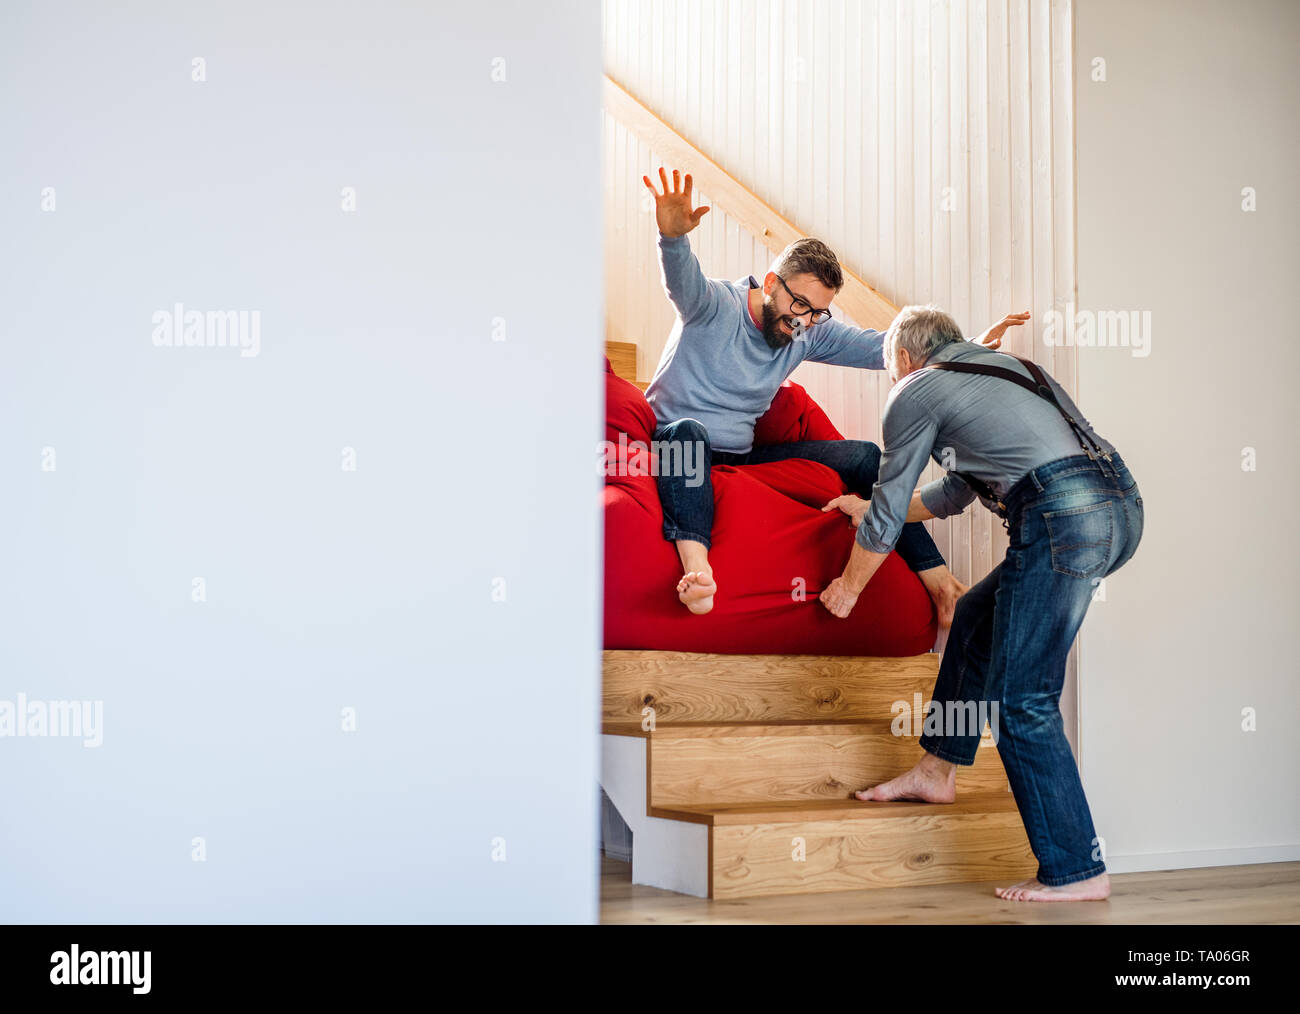 An adult hipster son and senior father sliding on stairs indoors at home, having fun. - Stock Image